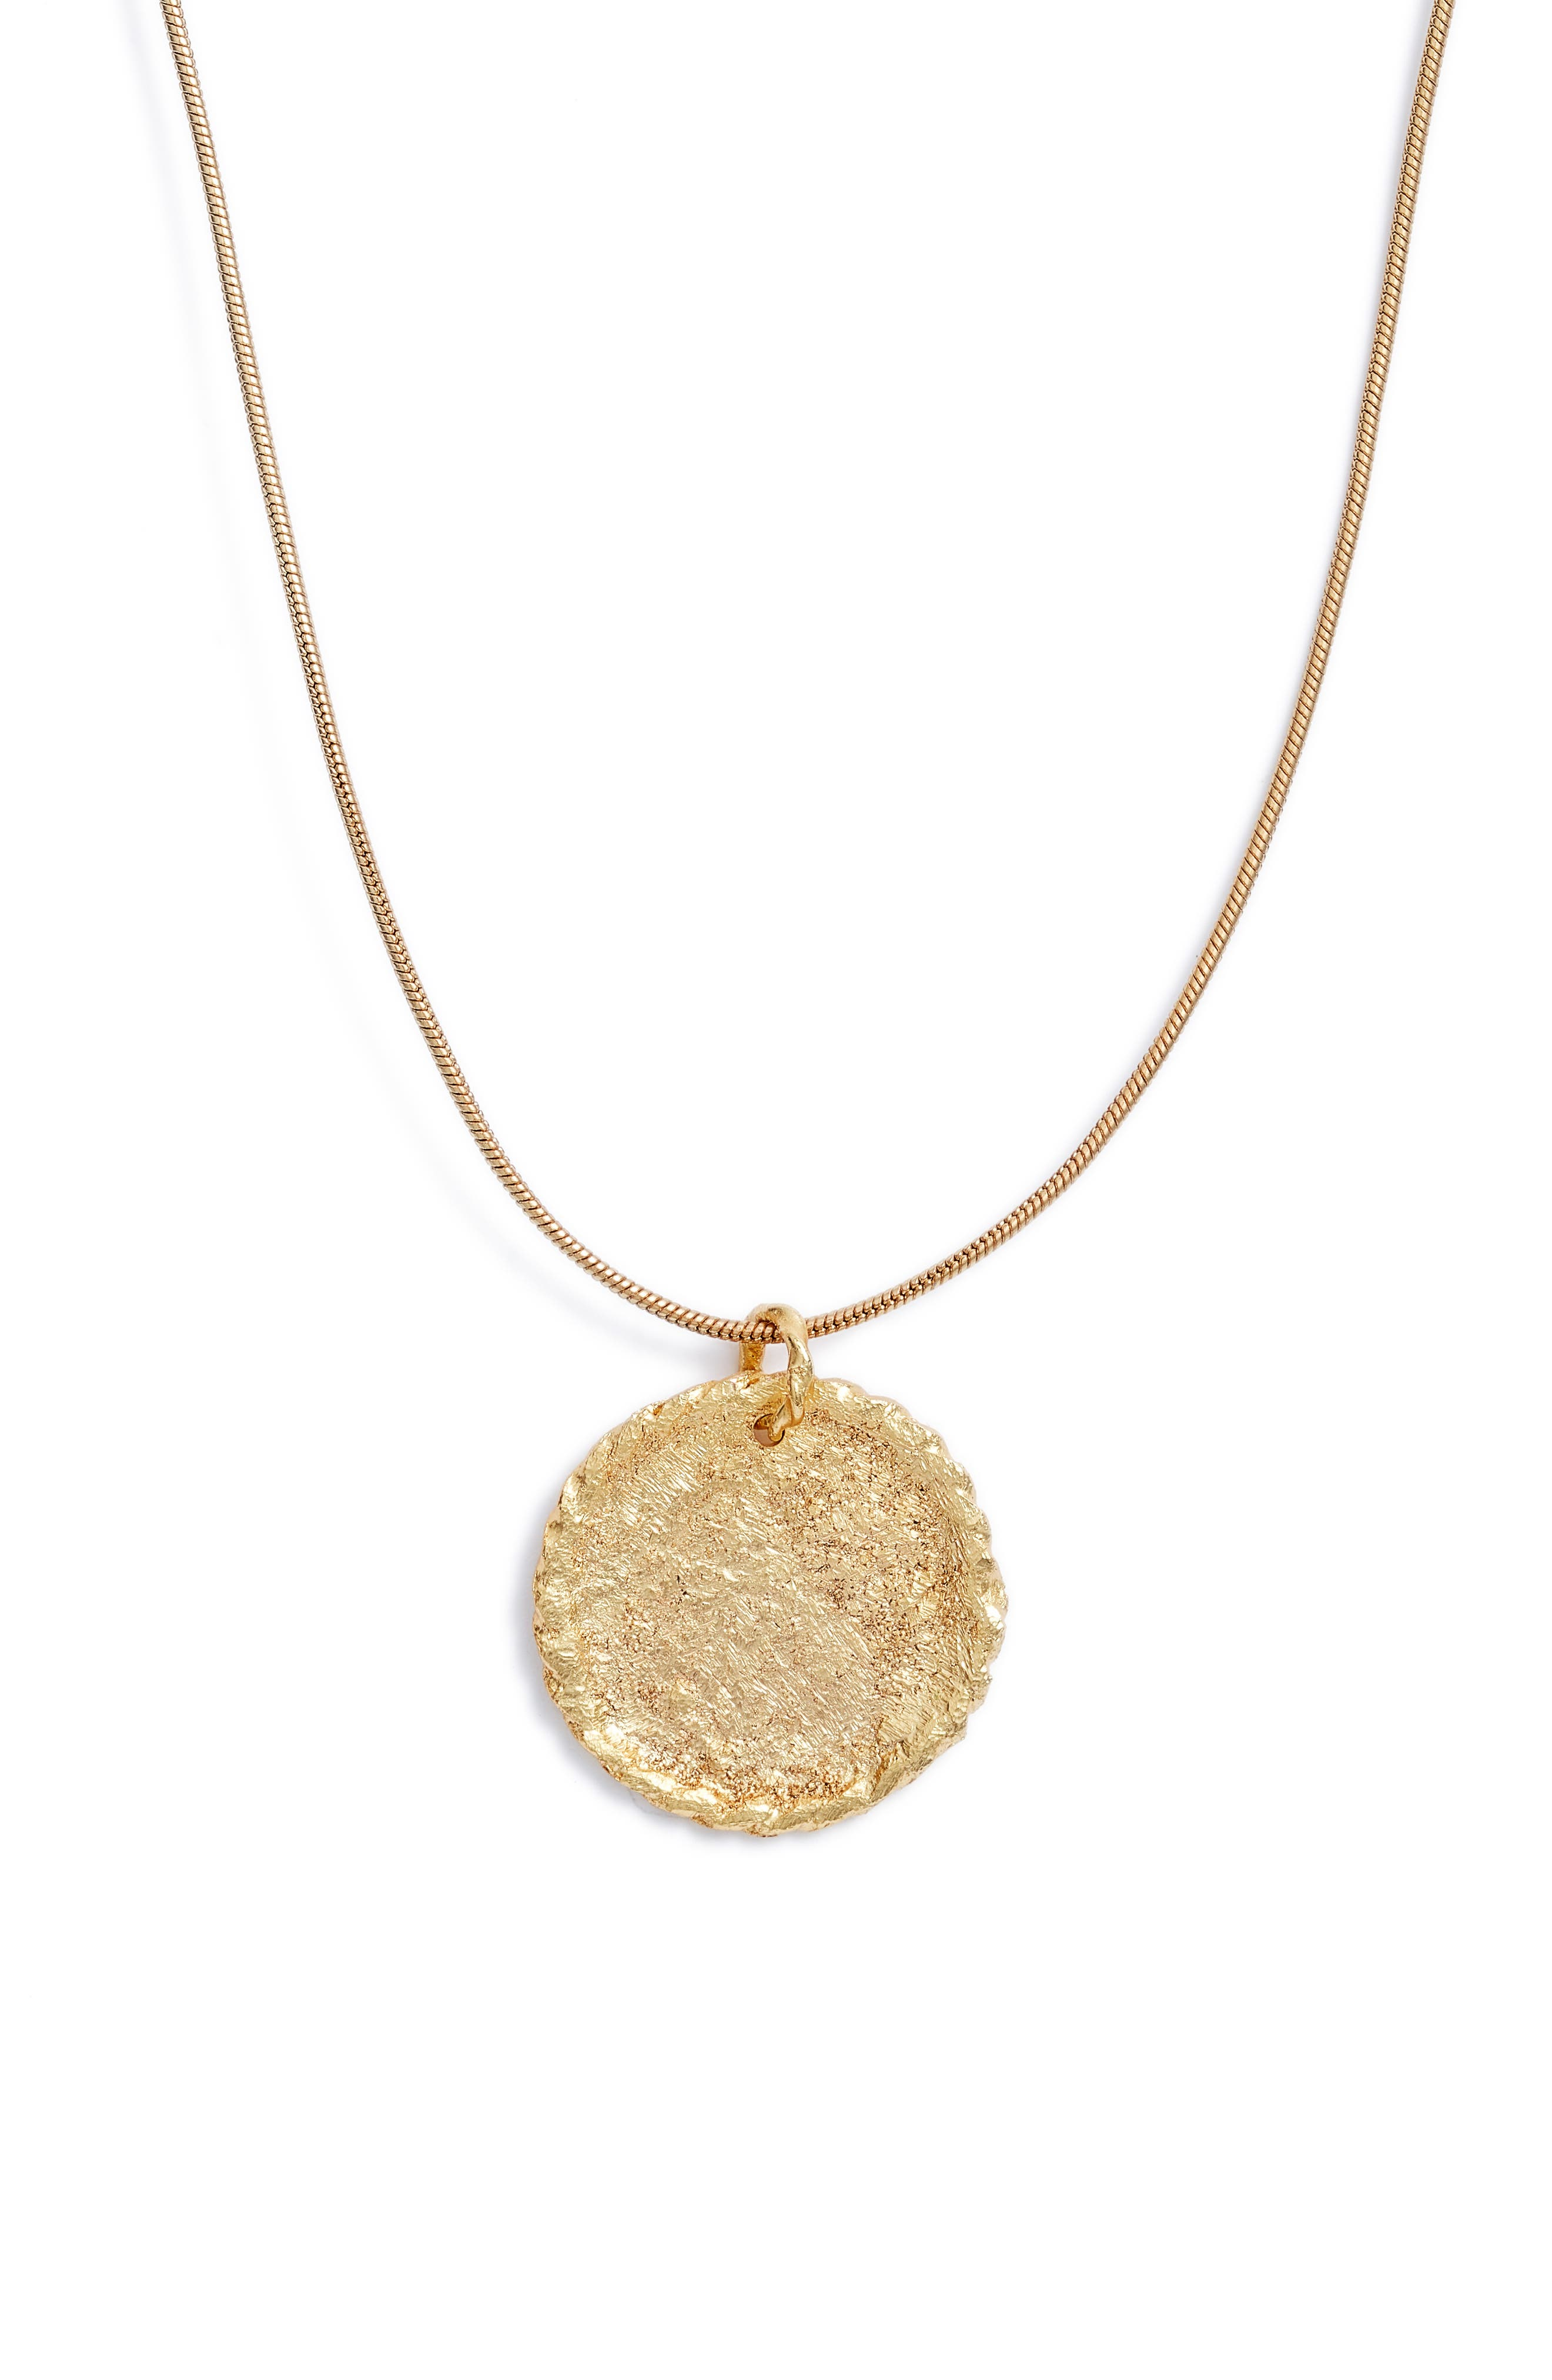 Crisobela Jewelry Boticario Coin Pendant Necklace in Gold at Nordstrom